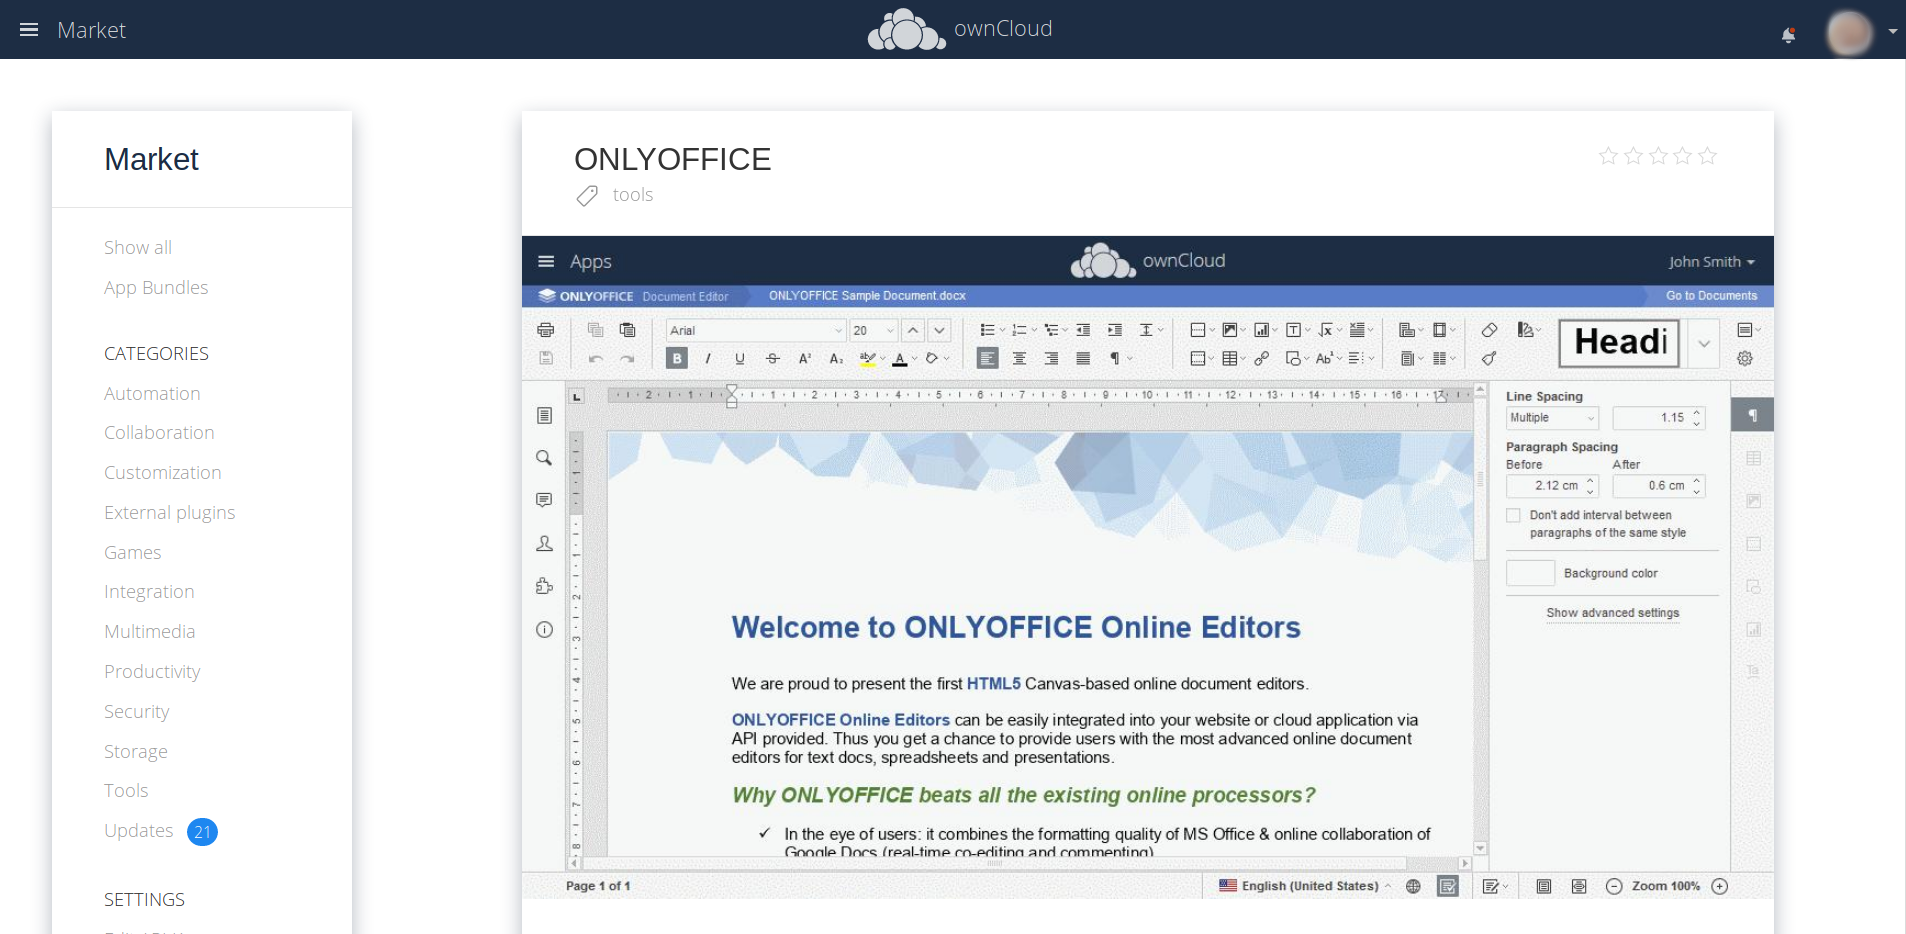 ownCloud OnlyOffice public link editing install